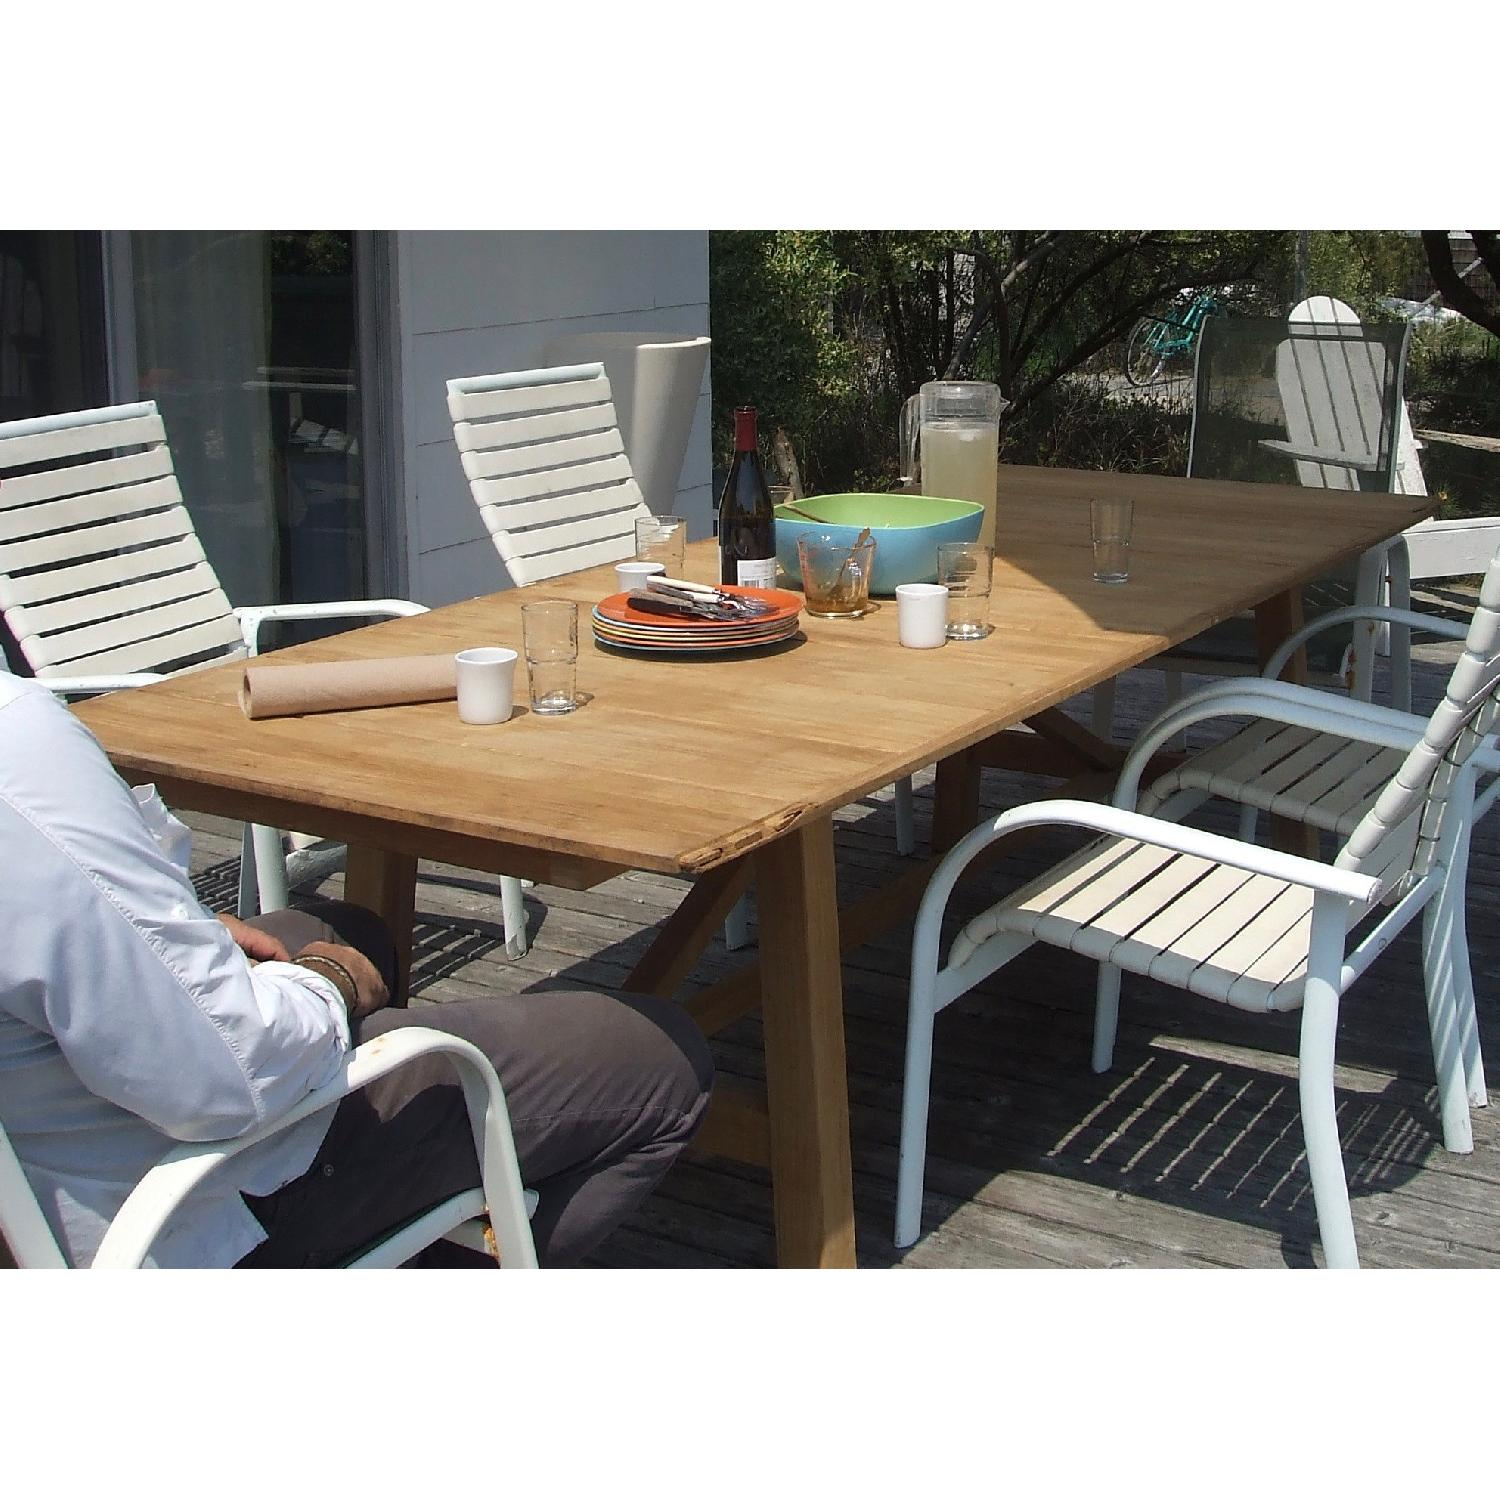 Design Within Reach Alden Collection Teak Outdoor Dining Table - image-2